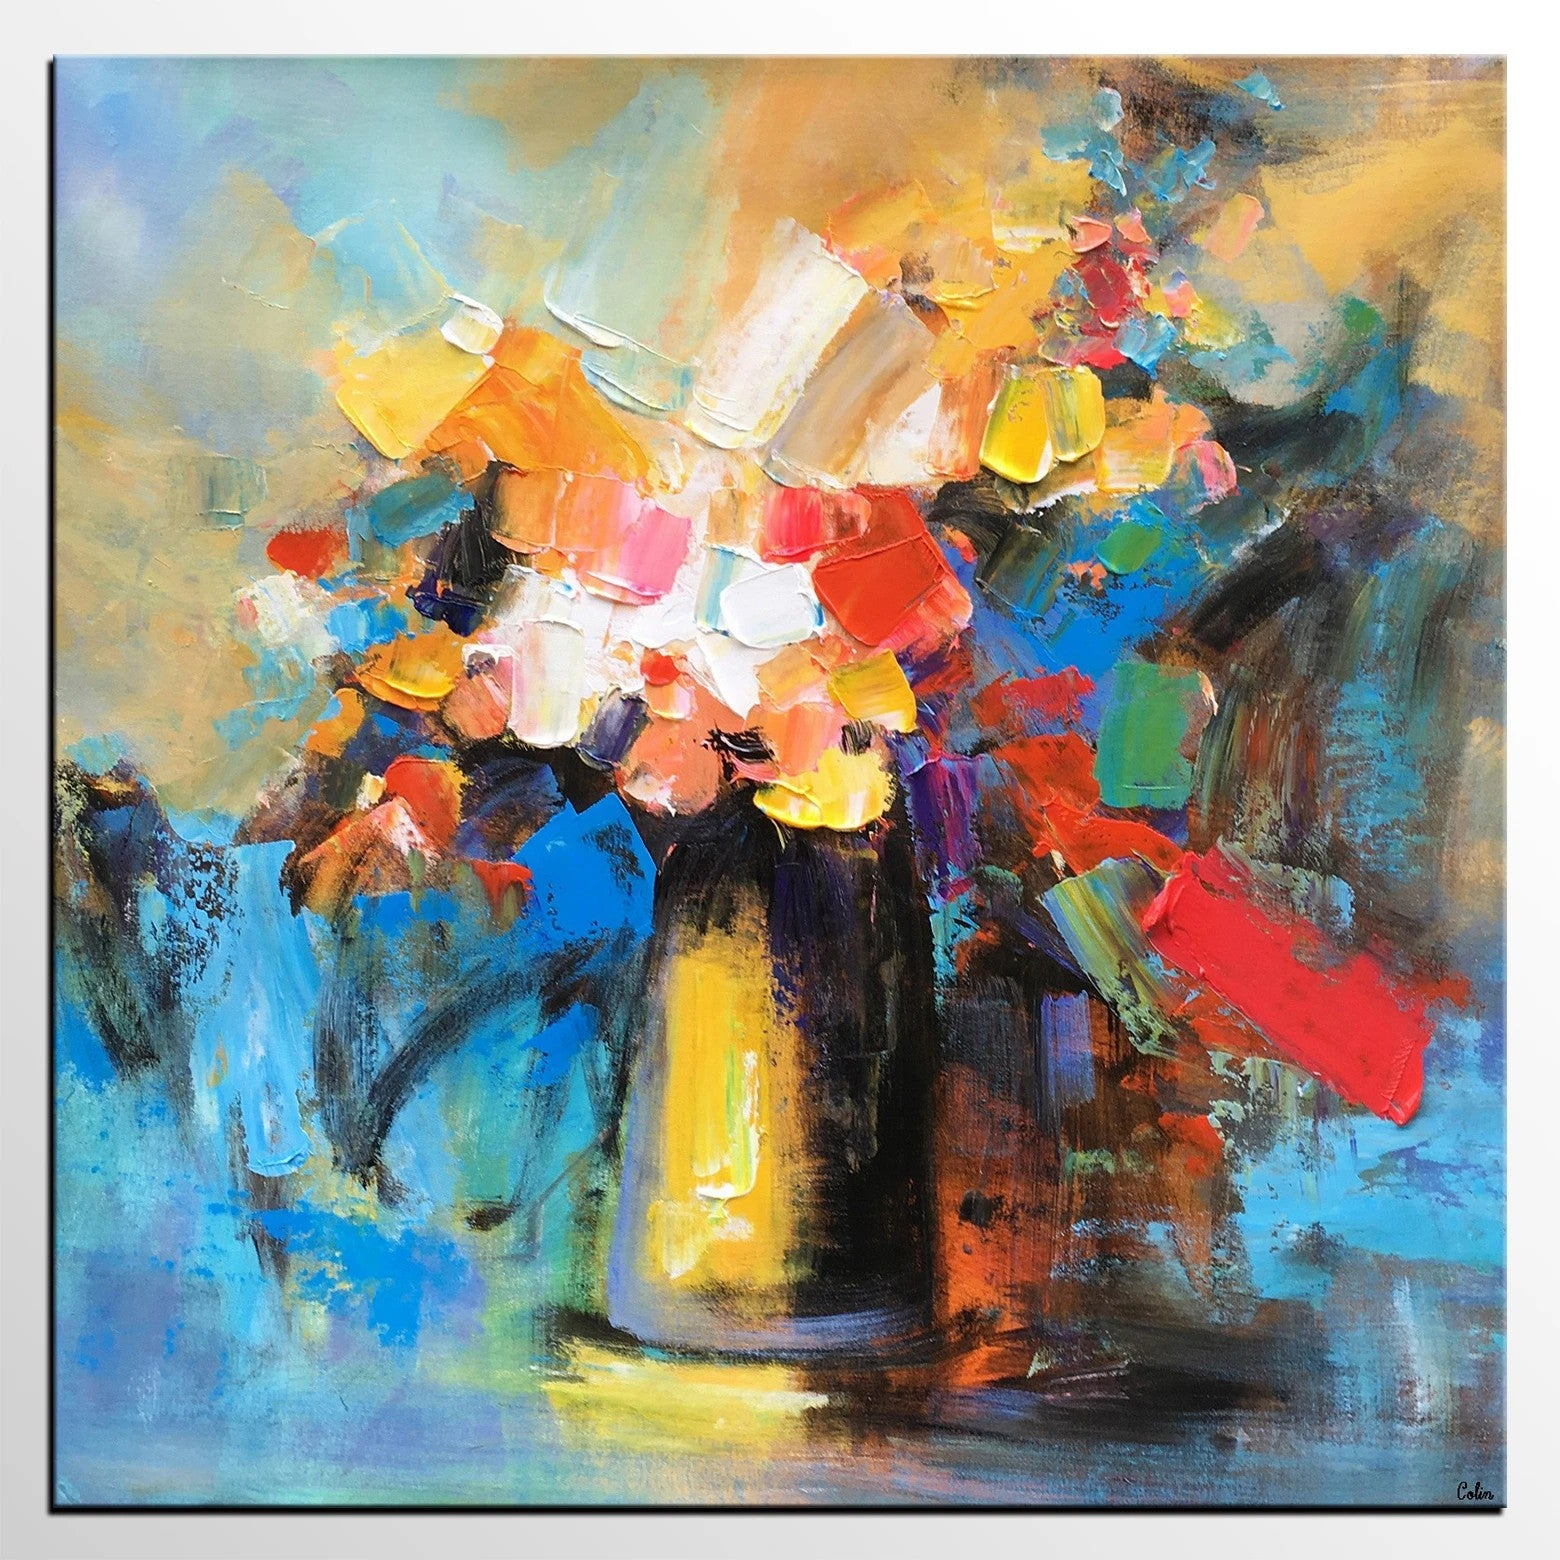 Flower Acrylic Painting, Abstract Acrylic Painting, Flower Painting for Sale, Custom Acrylic Painting on Canvas, Abstract Art on Canvas